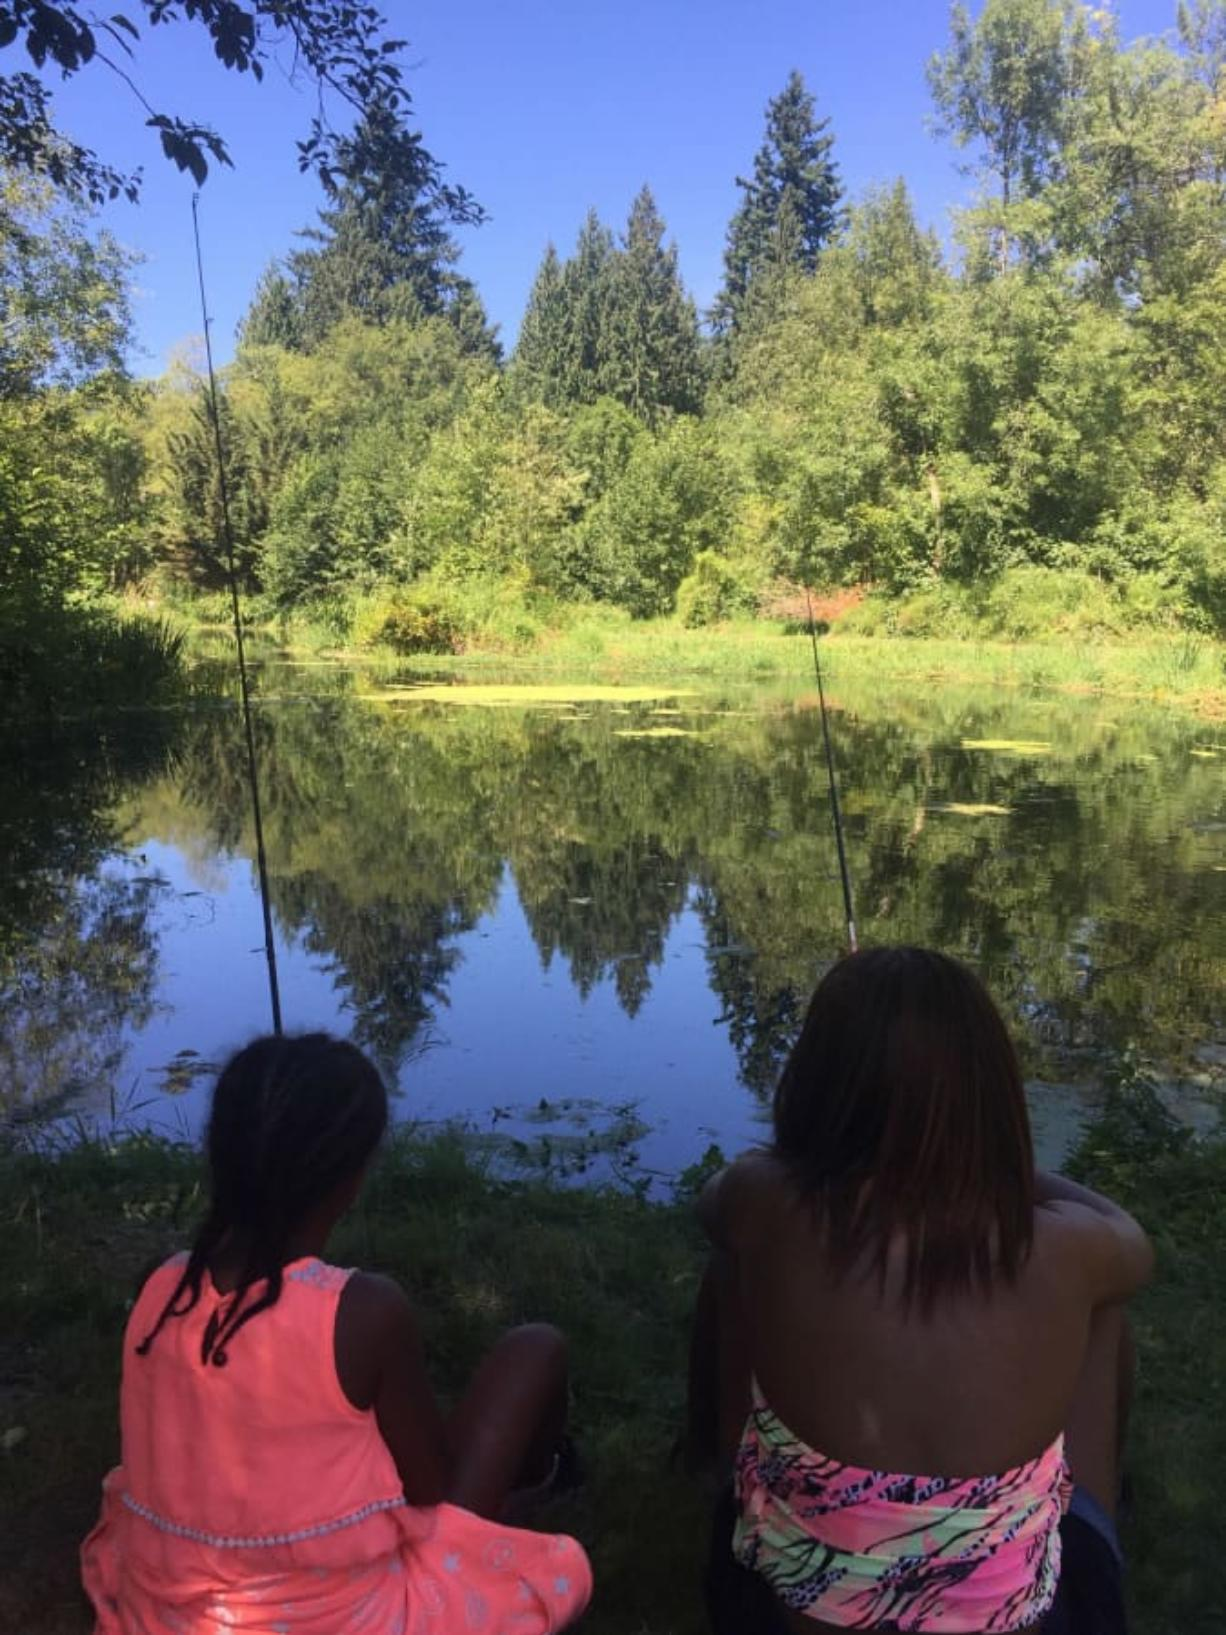 Barberton: More than 200 kids learned to fish while enjoying a variety of outdoor activities on July 22 at an event organized by U.S. Fish and Wildlife Service and I'm Hooked, Inc., a Portland-based nonprofit.